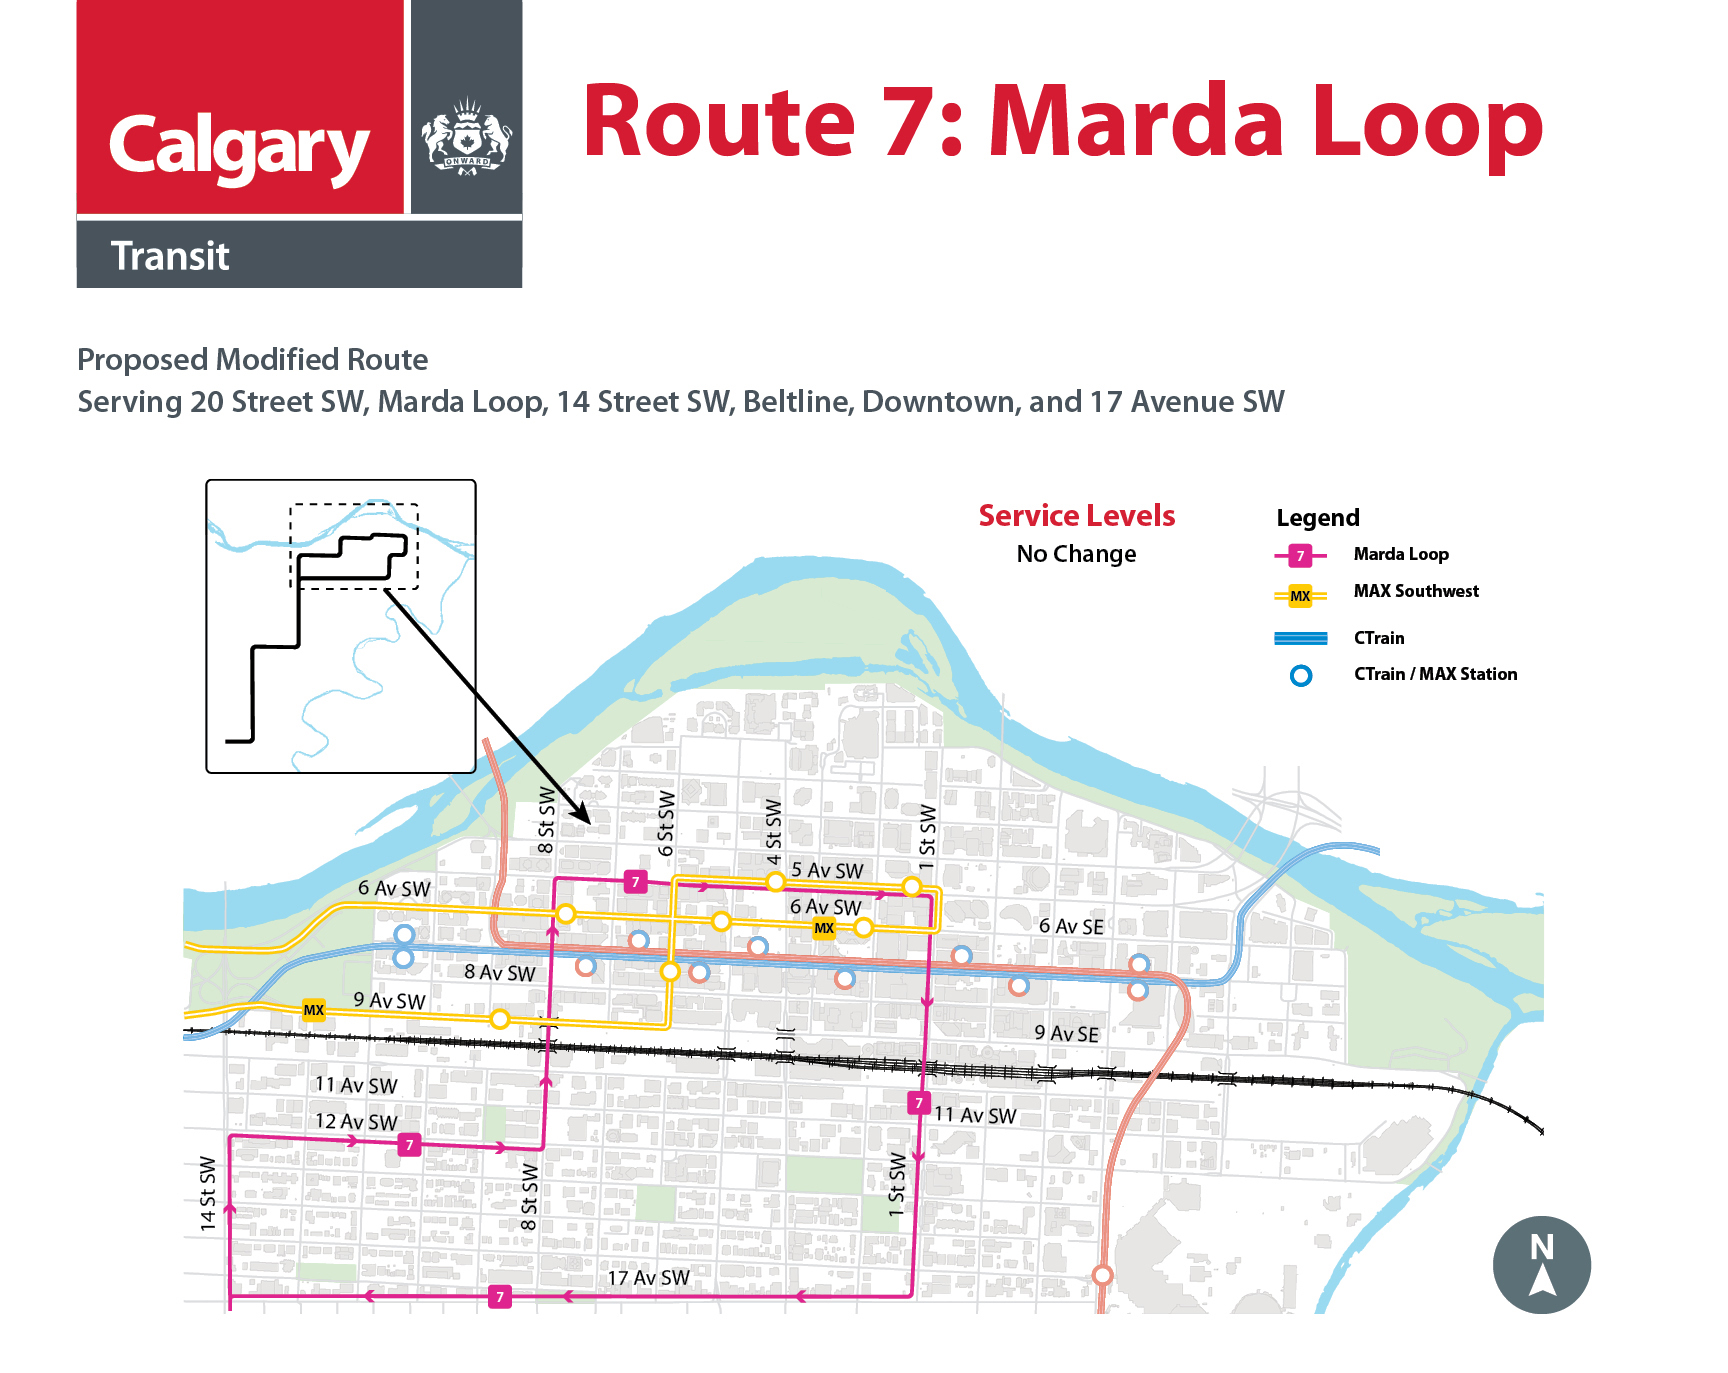 Proposed Changes to Route 7